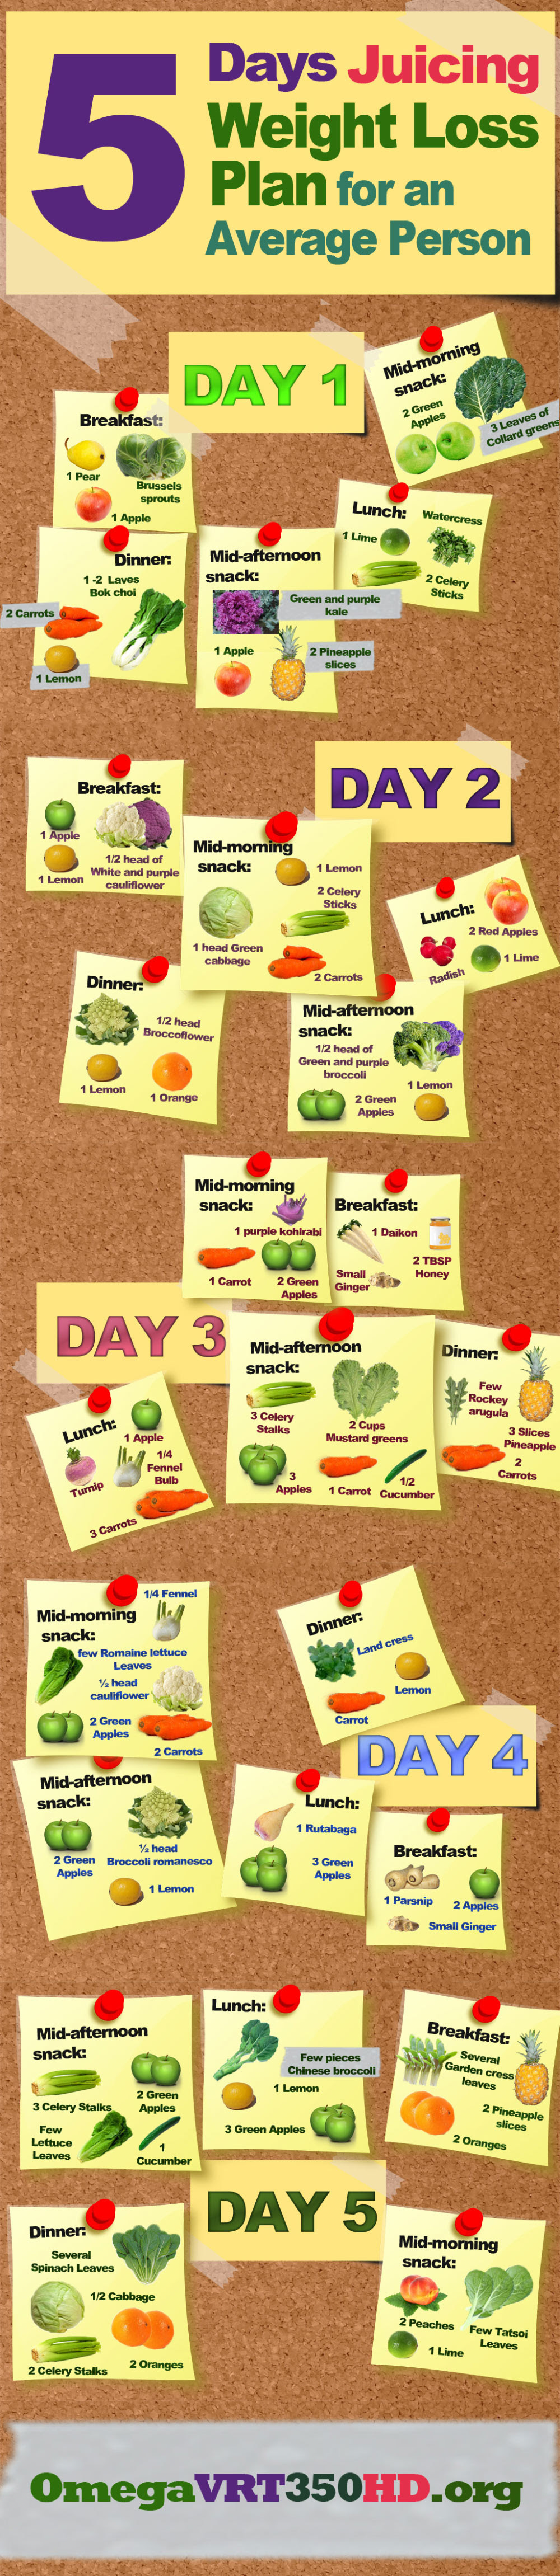 Infographic: 5 Days Juicing Weight Loss Plan for an Average Person